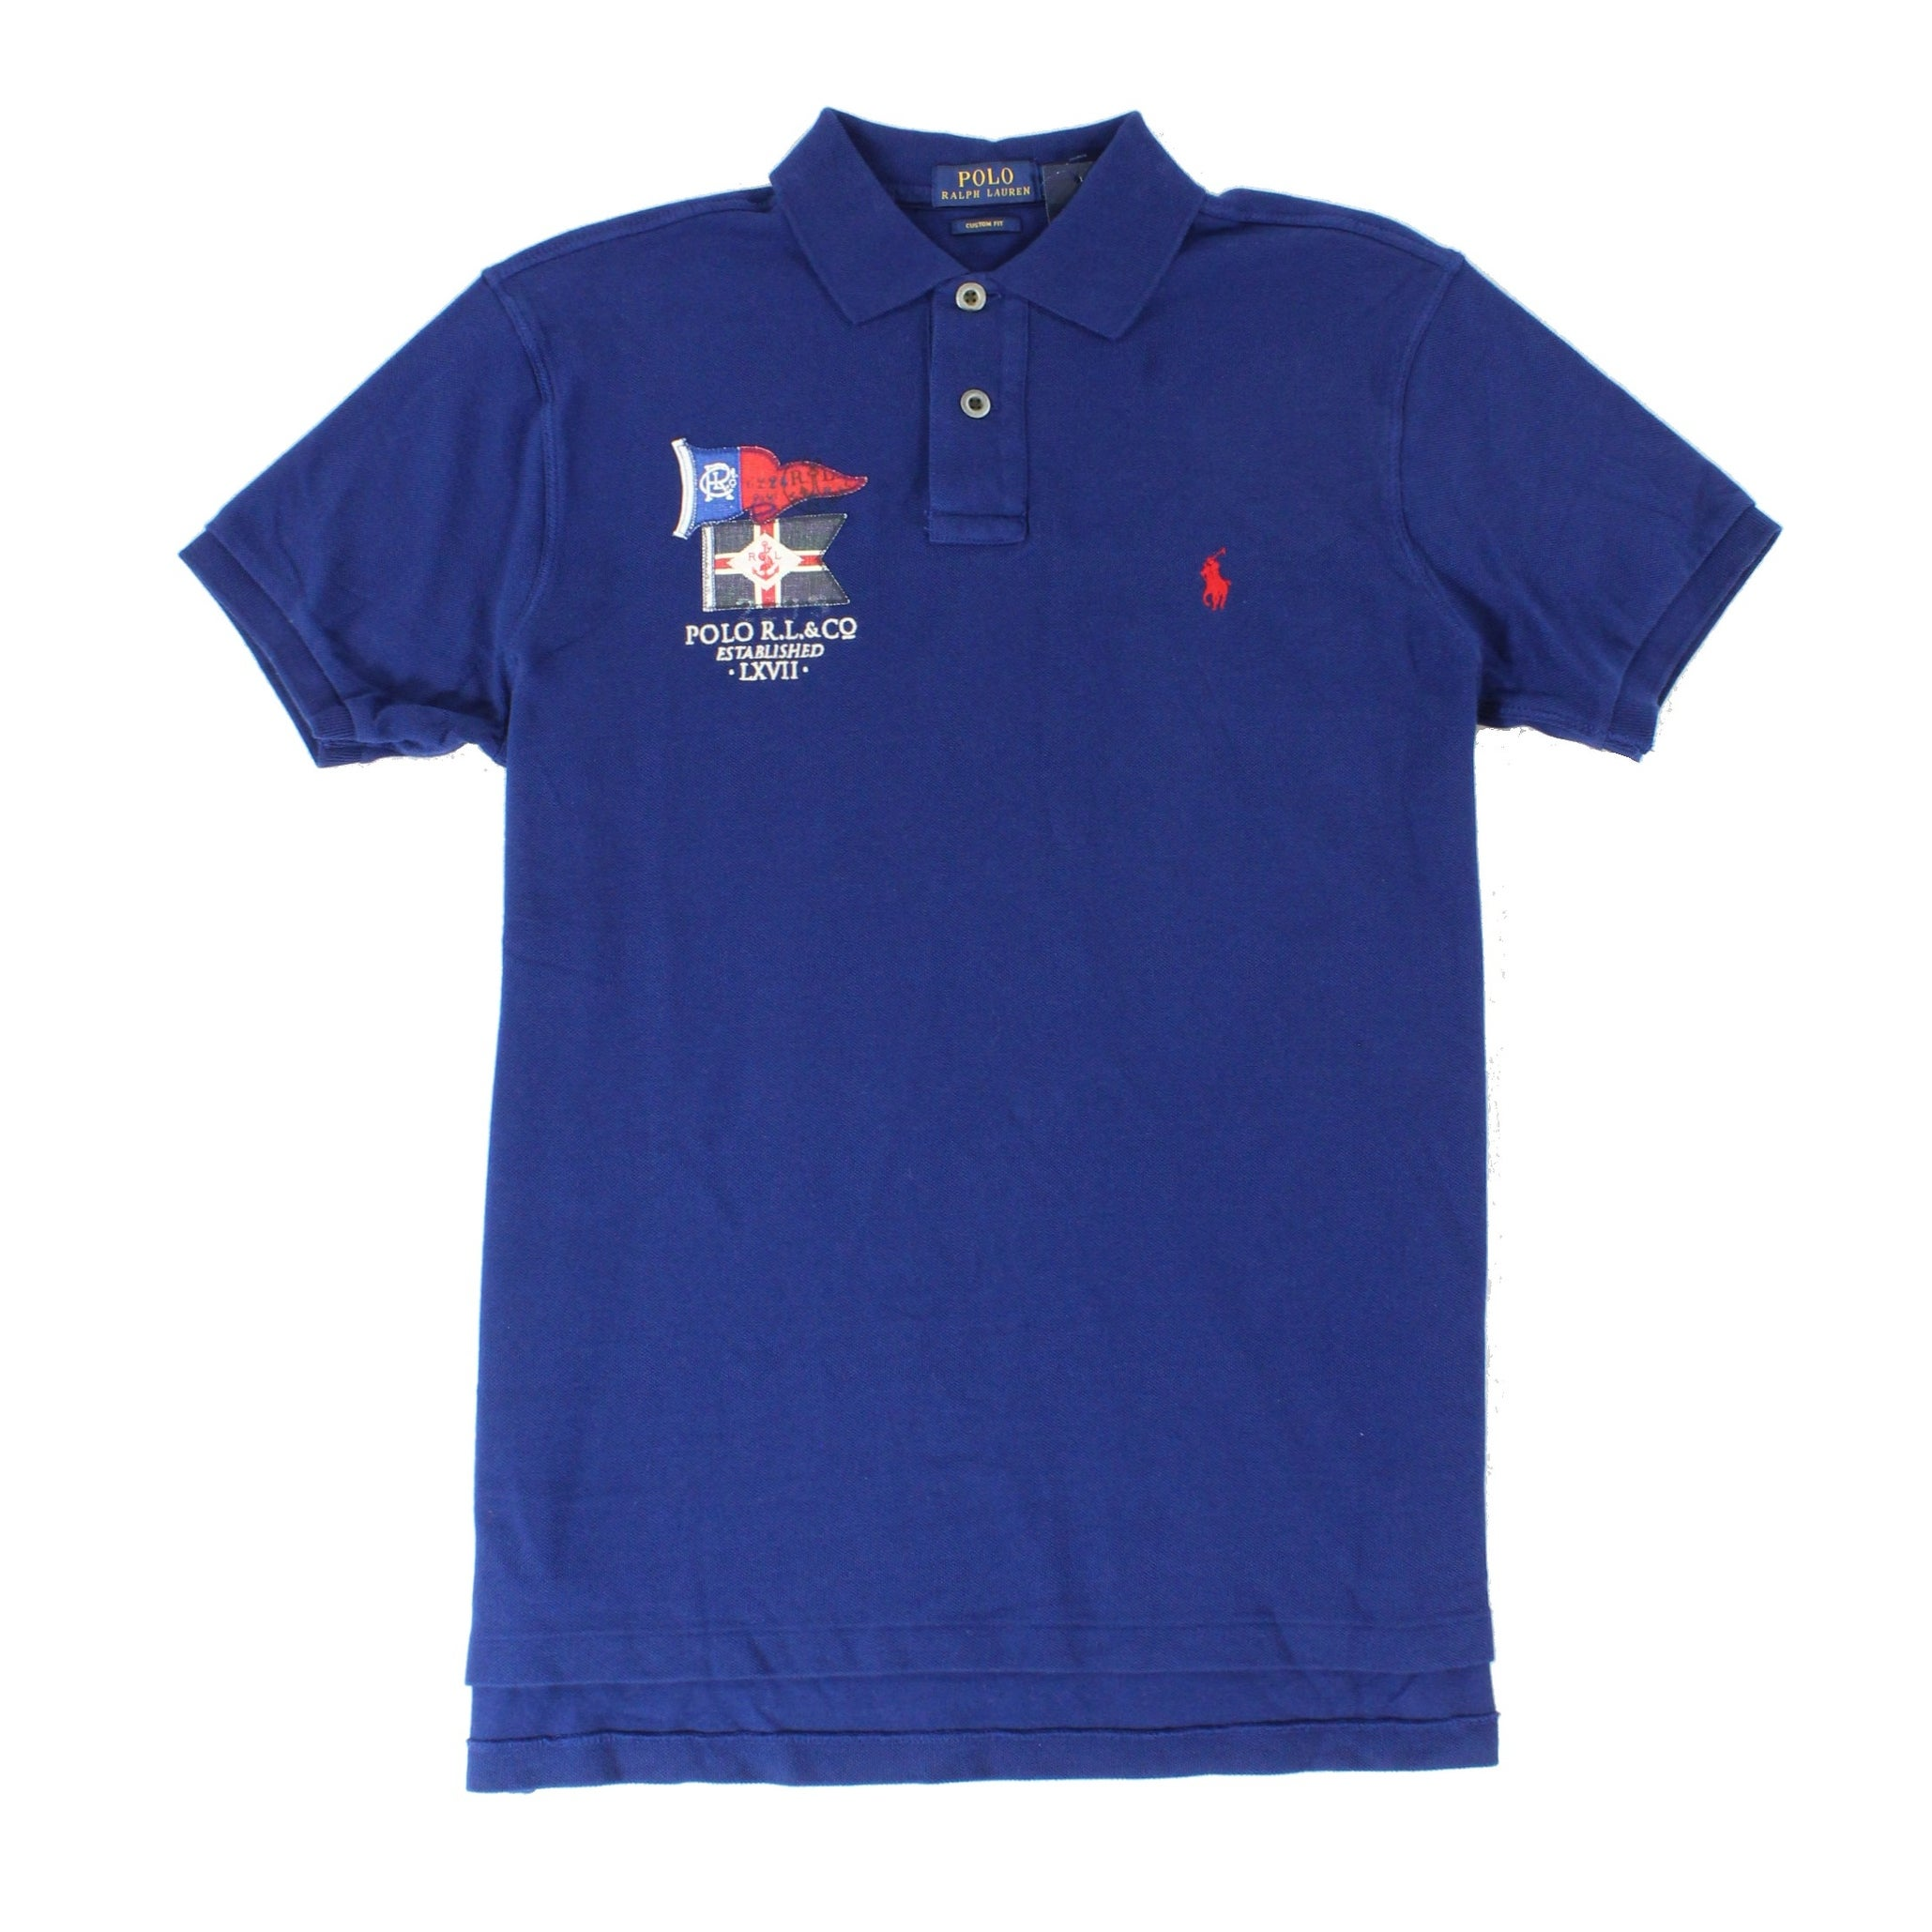 Polo Ralph Lauren New Navy Blue Mens Size Large L Embroidered Polo